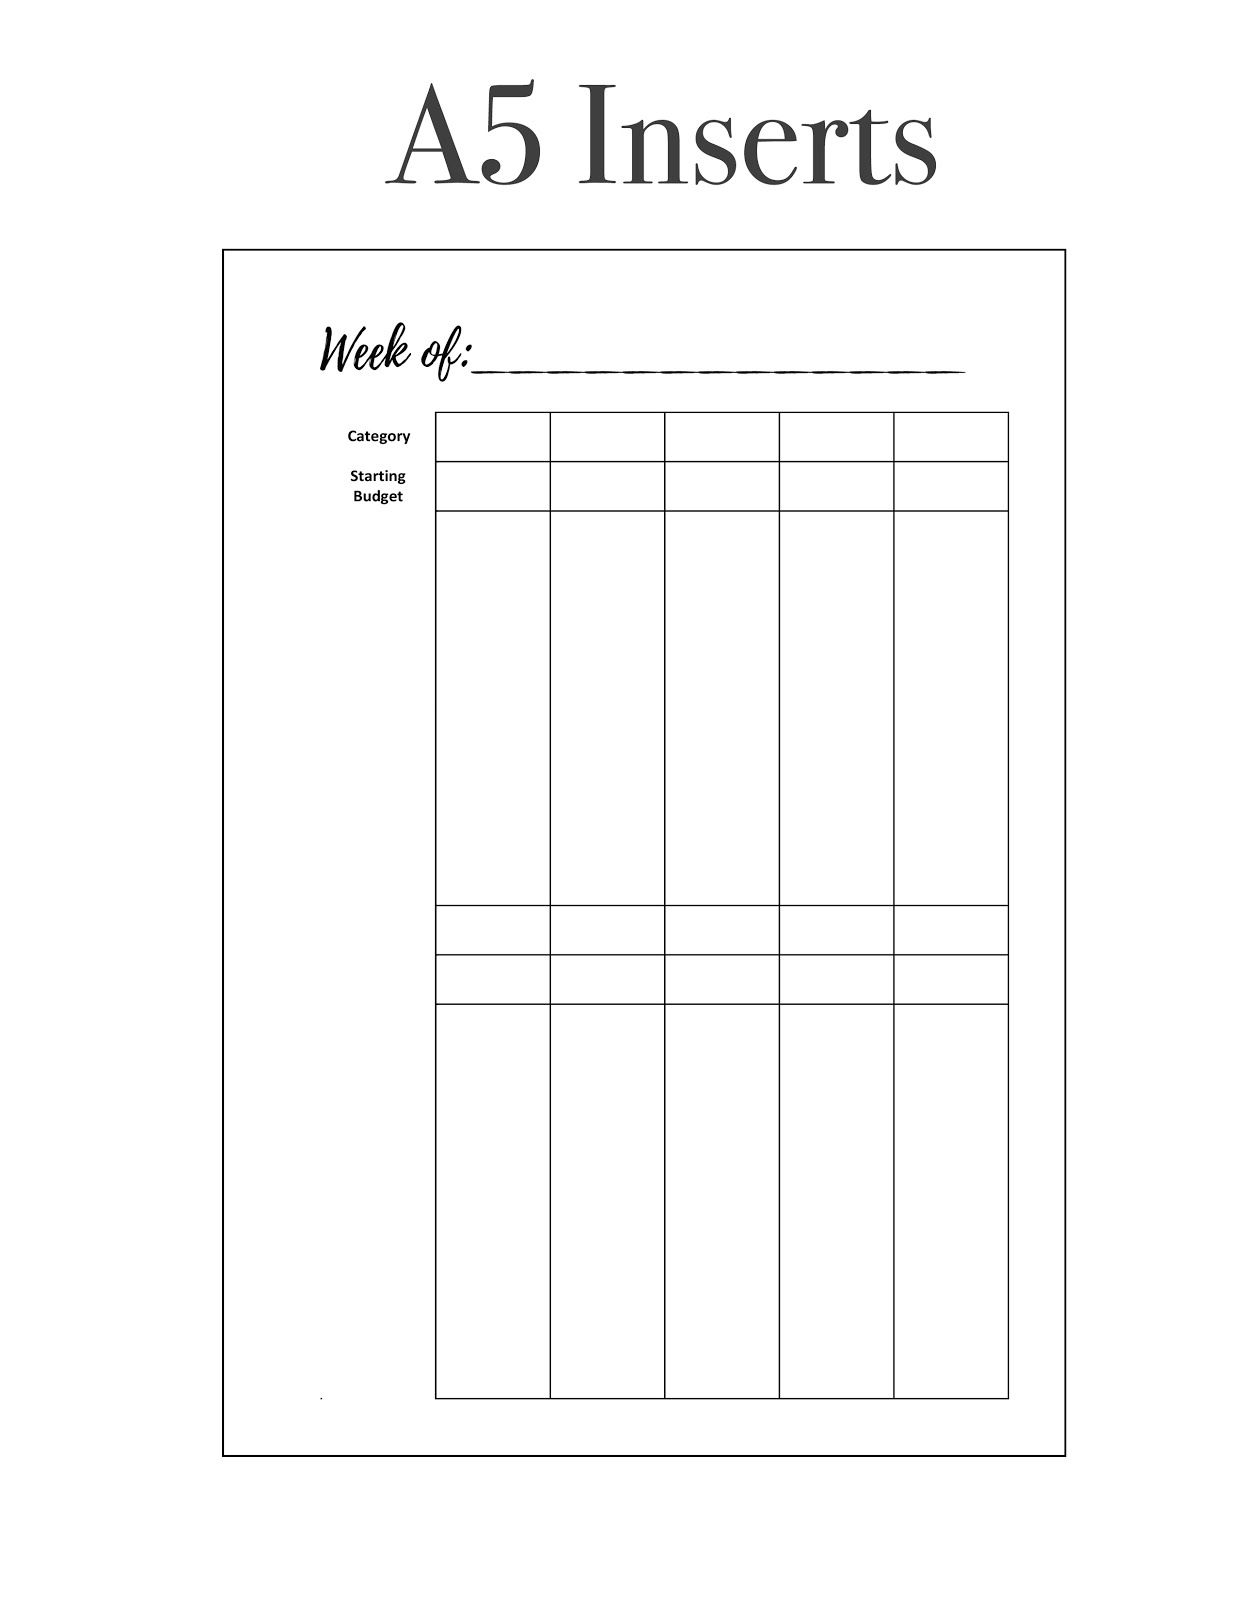 freebie friday weekly budget tracker printable planner